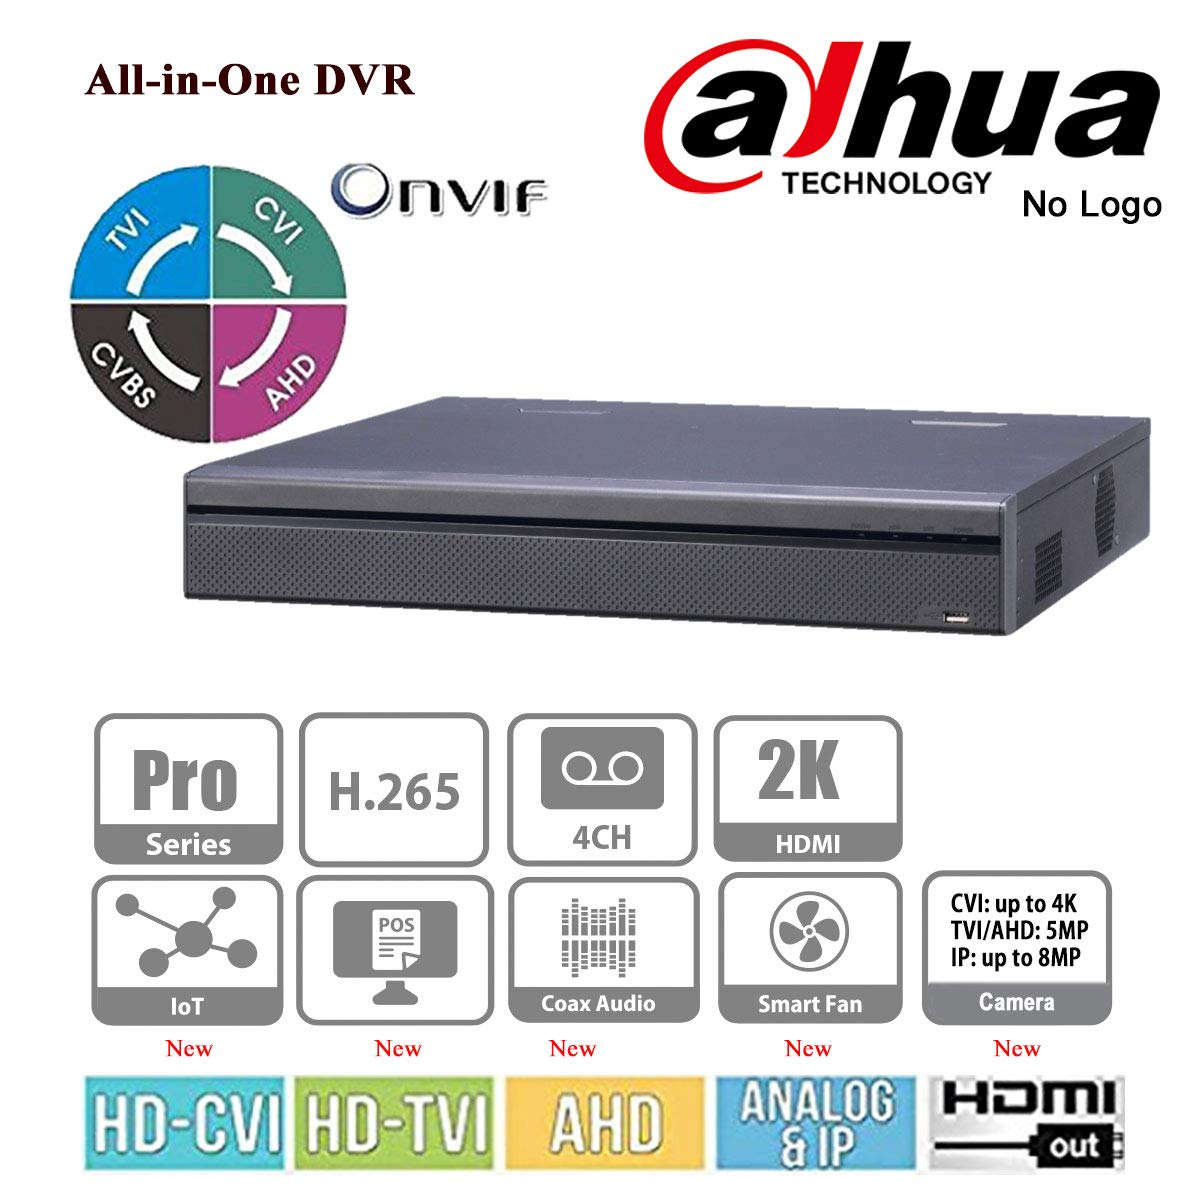 Amazon.com : Dahua Pentabrid XVR7108HE-4KL-X 8+8 Channel 4K Mini 1U Pro DVR Support 8CH HD-CVI/HD-TVI/AHD/Analog up to 4K, 8CH Additional IP up to 8MP, ...